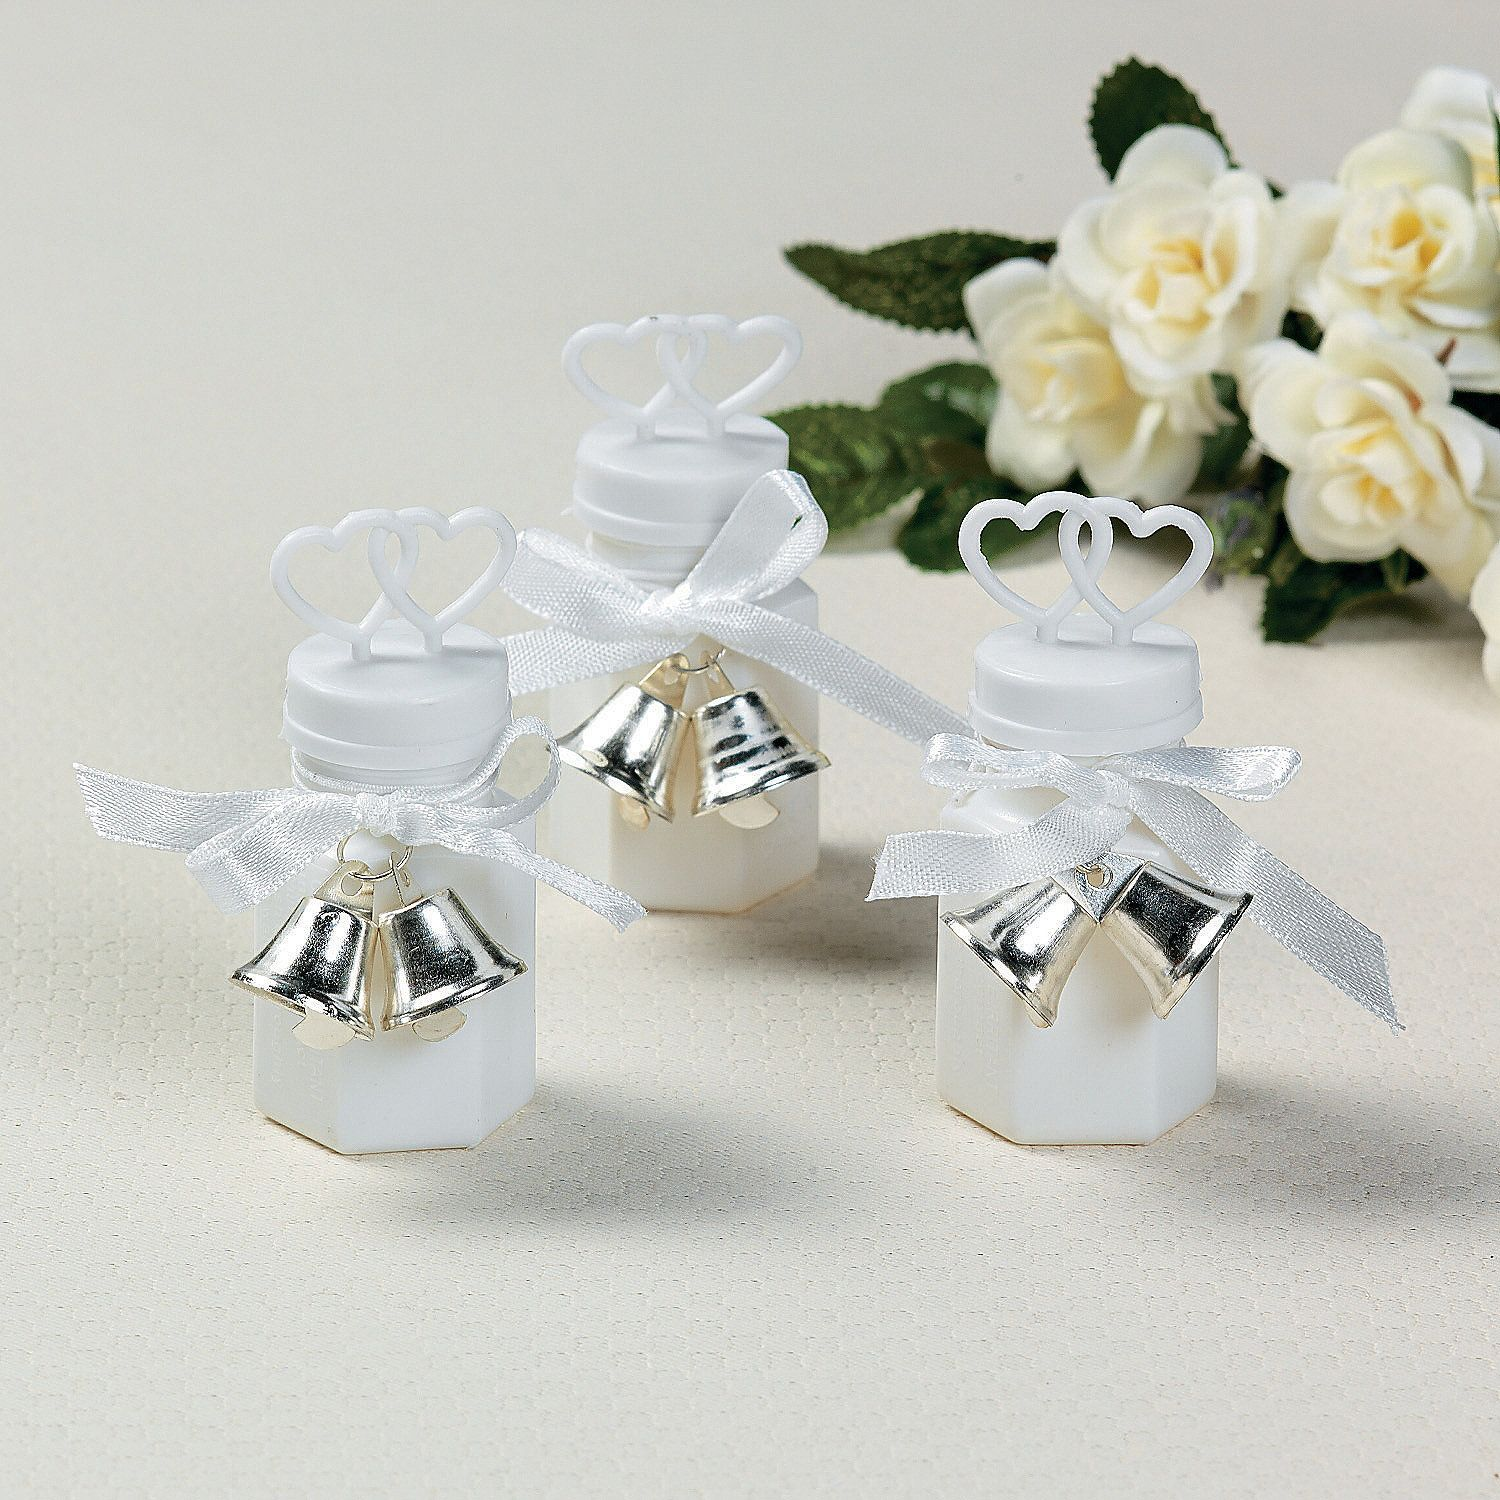 Wedding Bubble Bottles With Silver Bell Tie-Ons - OrientalTrading ...